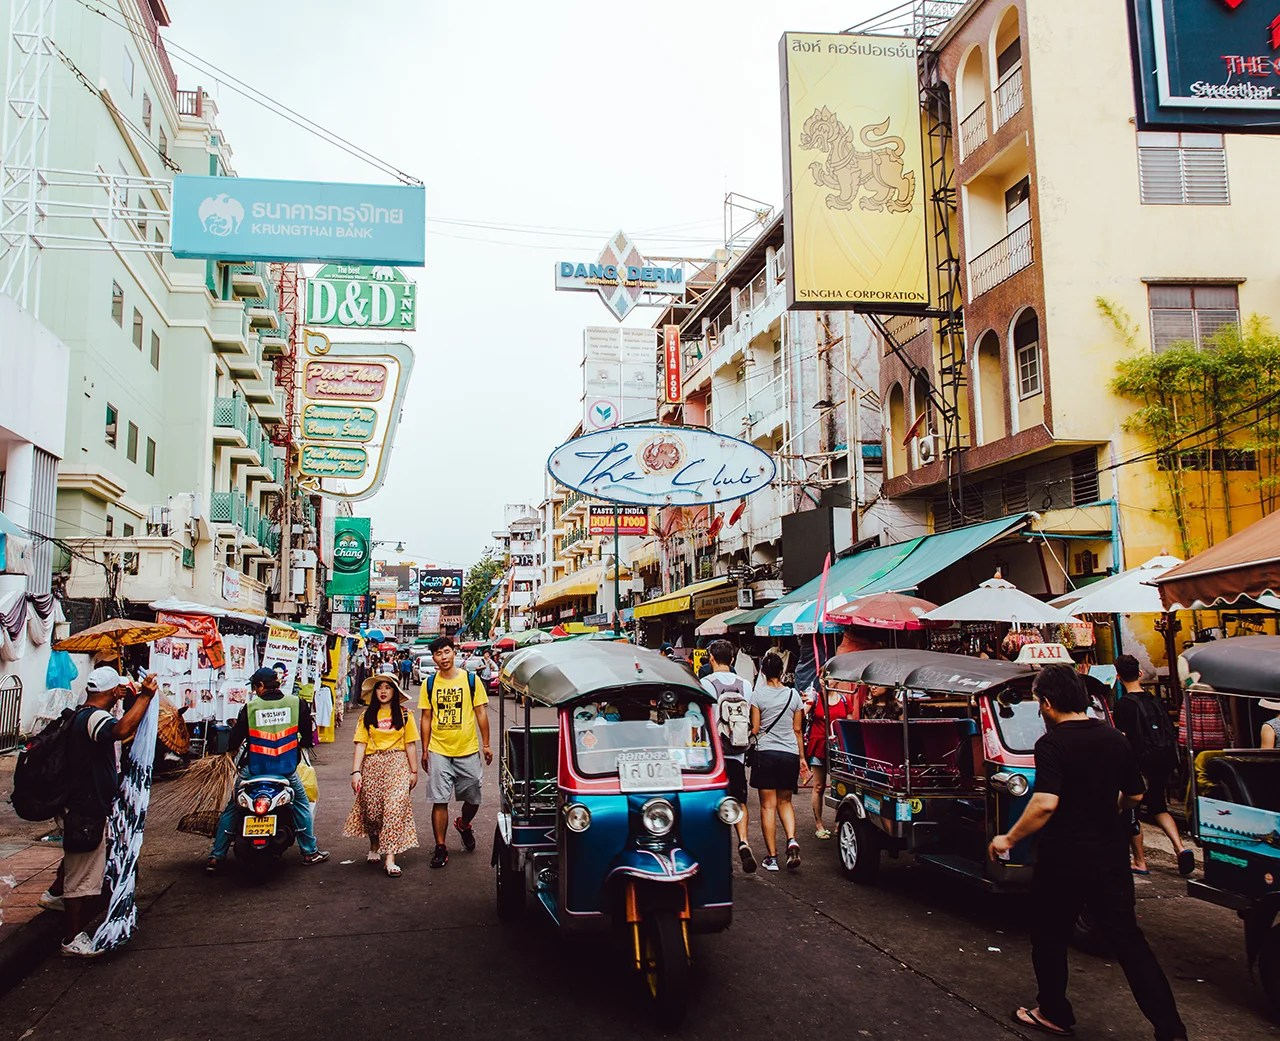 How to Avoid These Typical Tourist Scams on Your Trip to Thailand